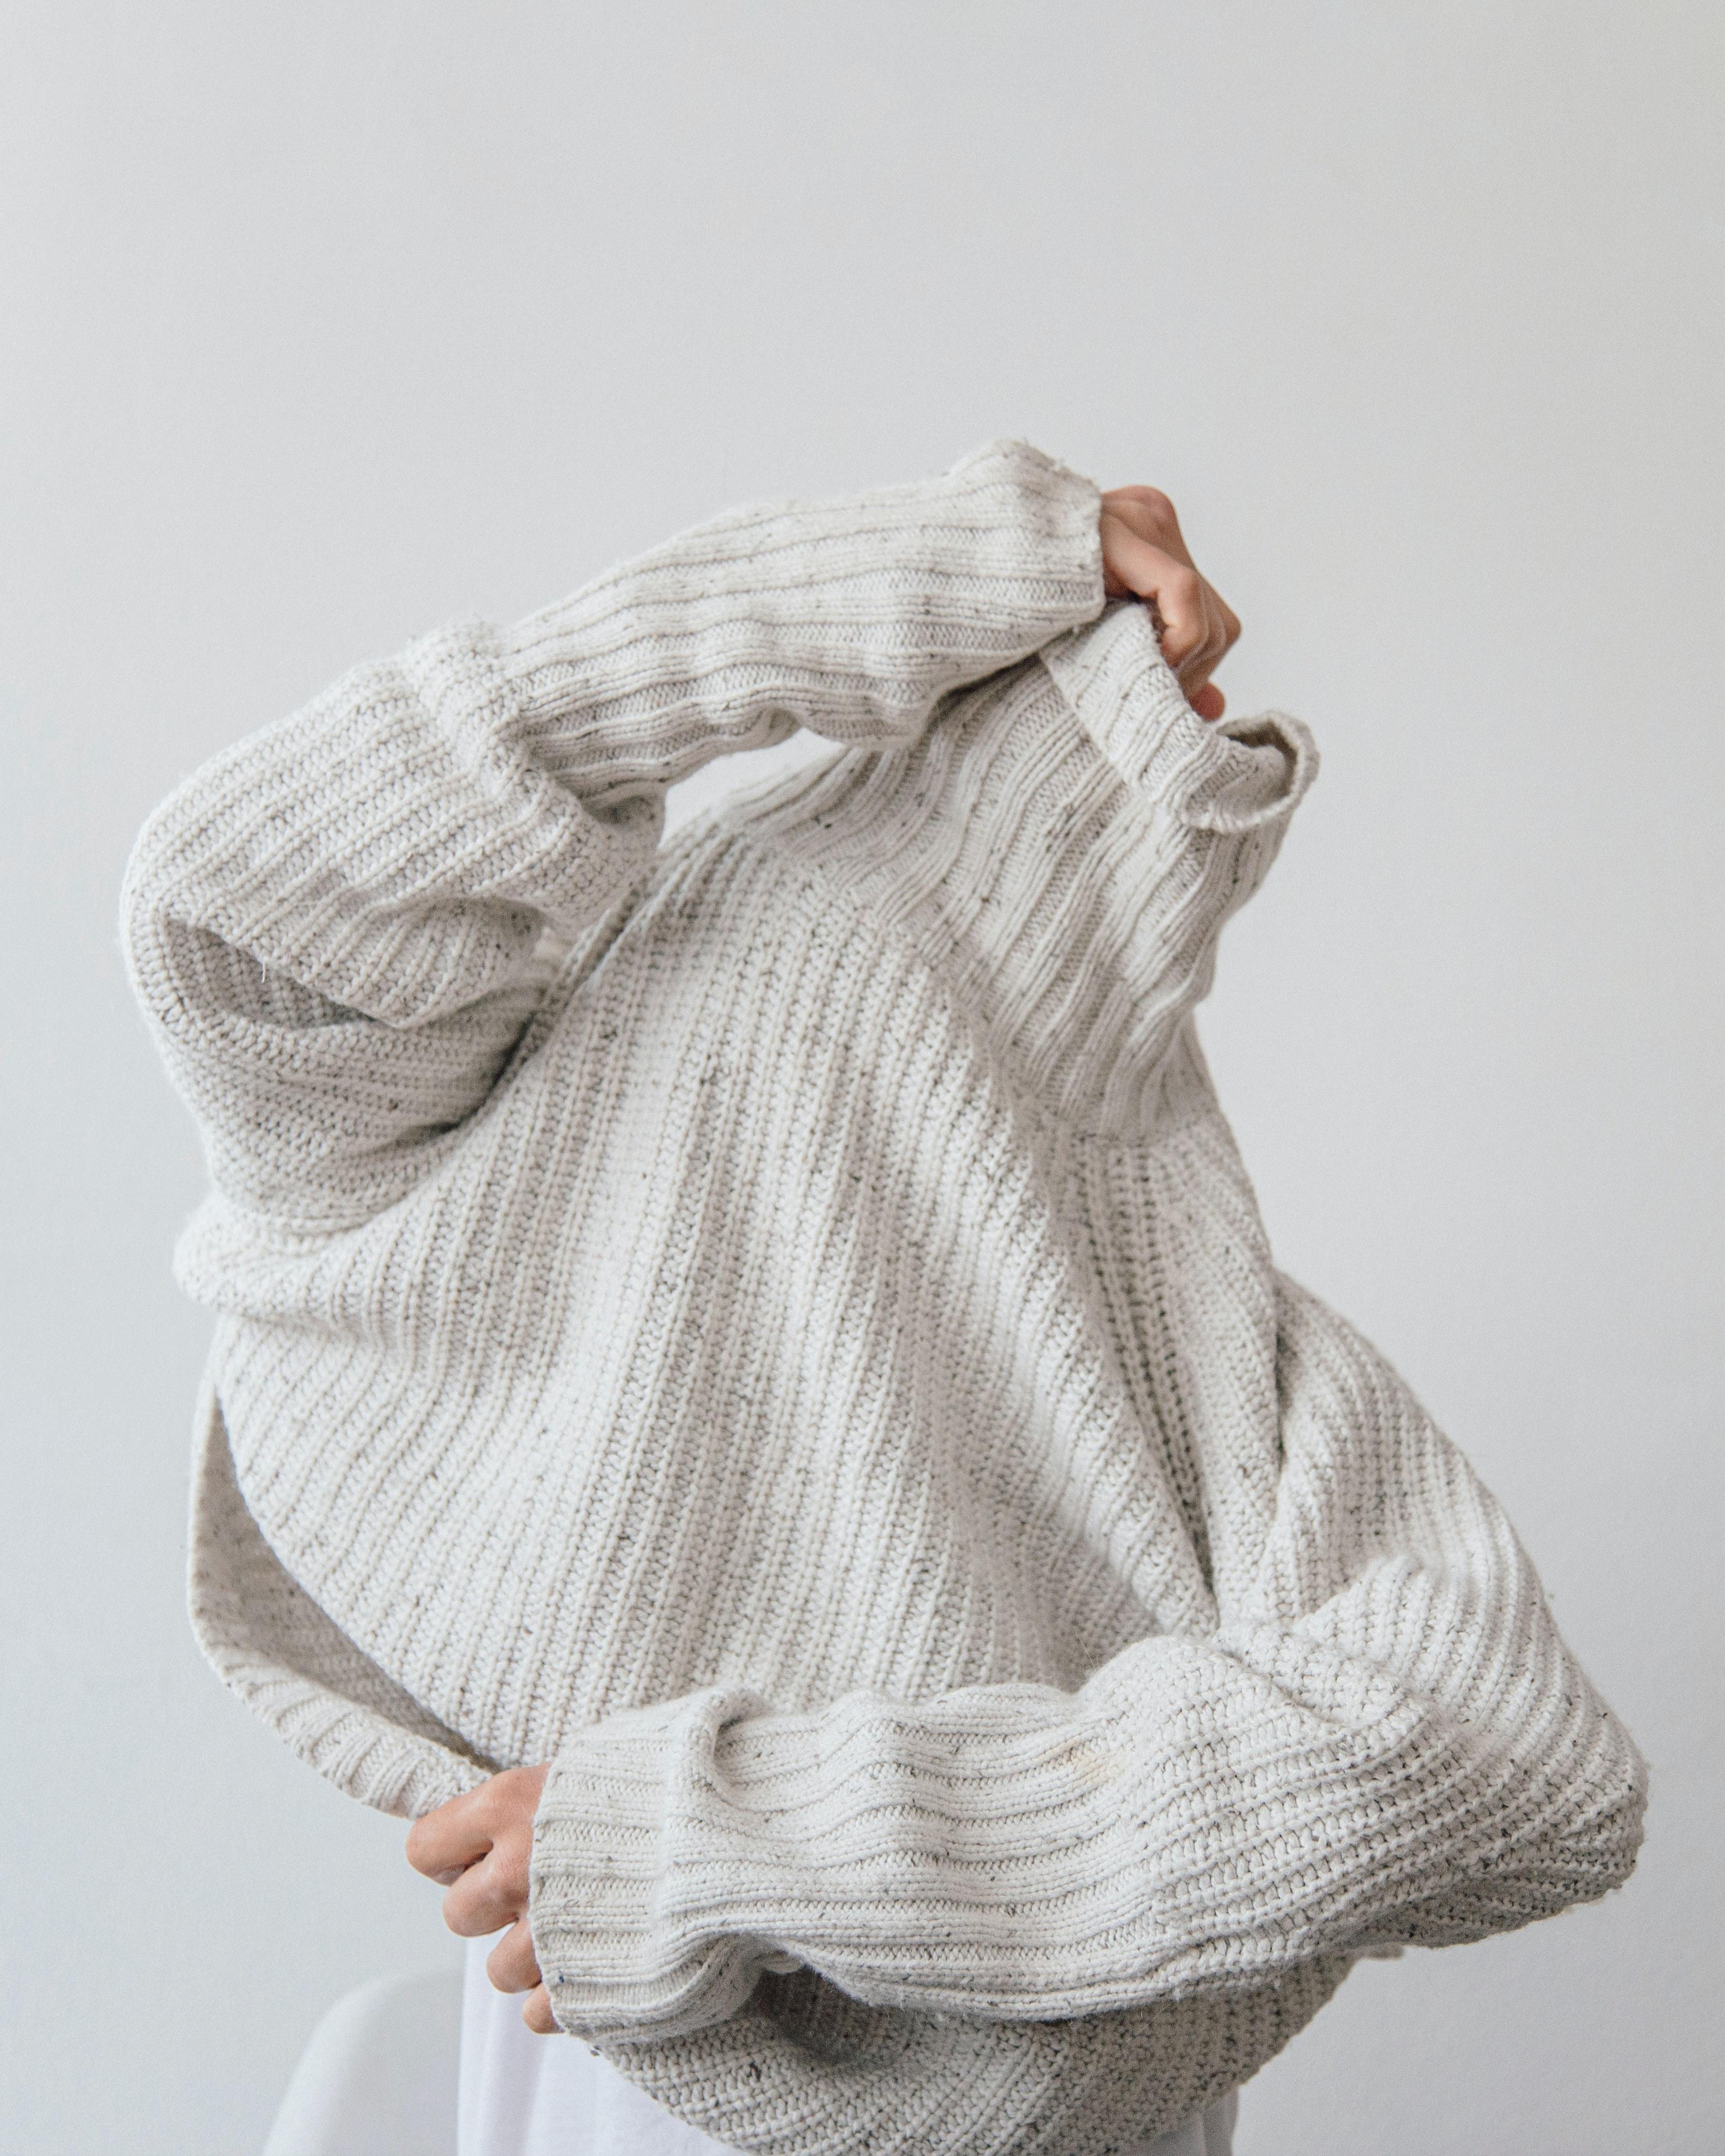 Pulling a sweater over.